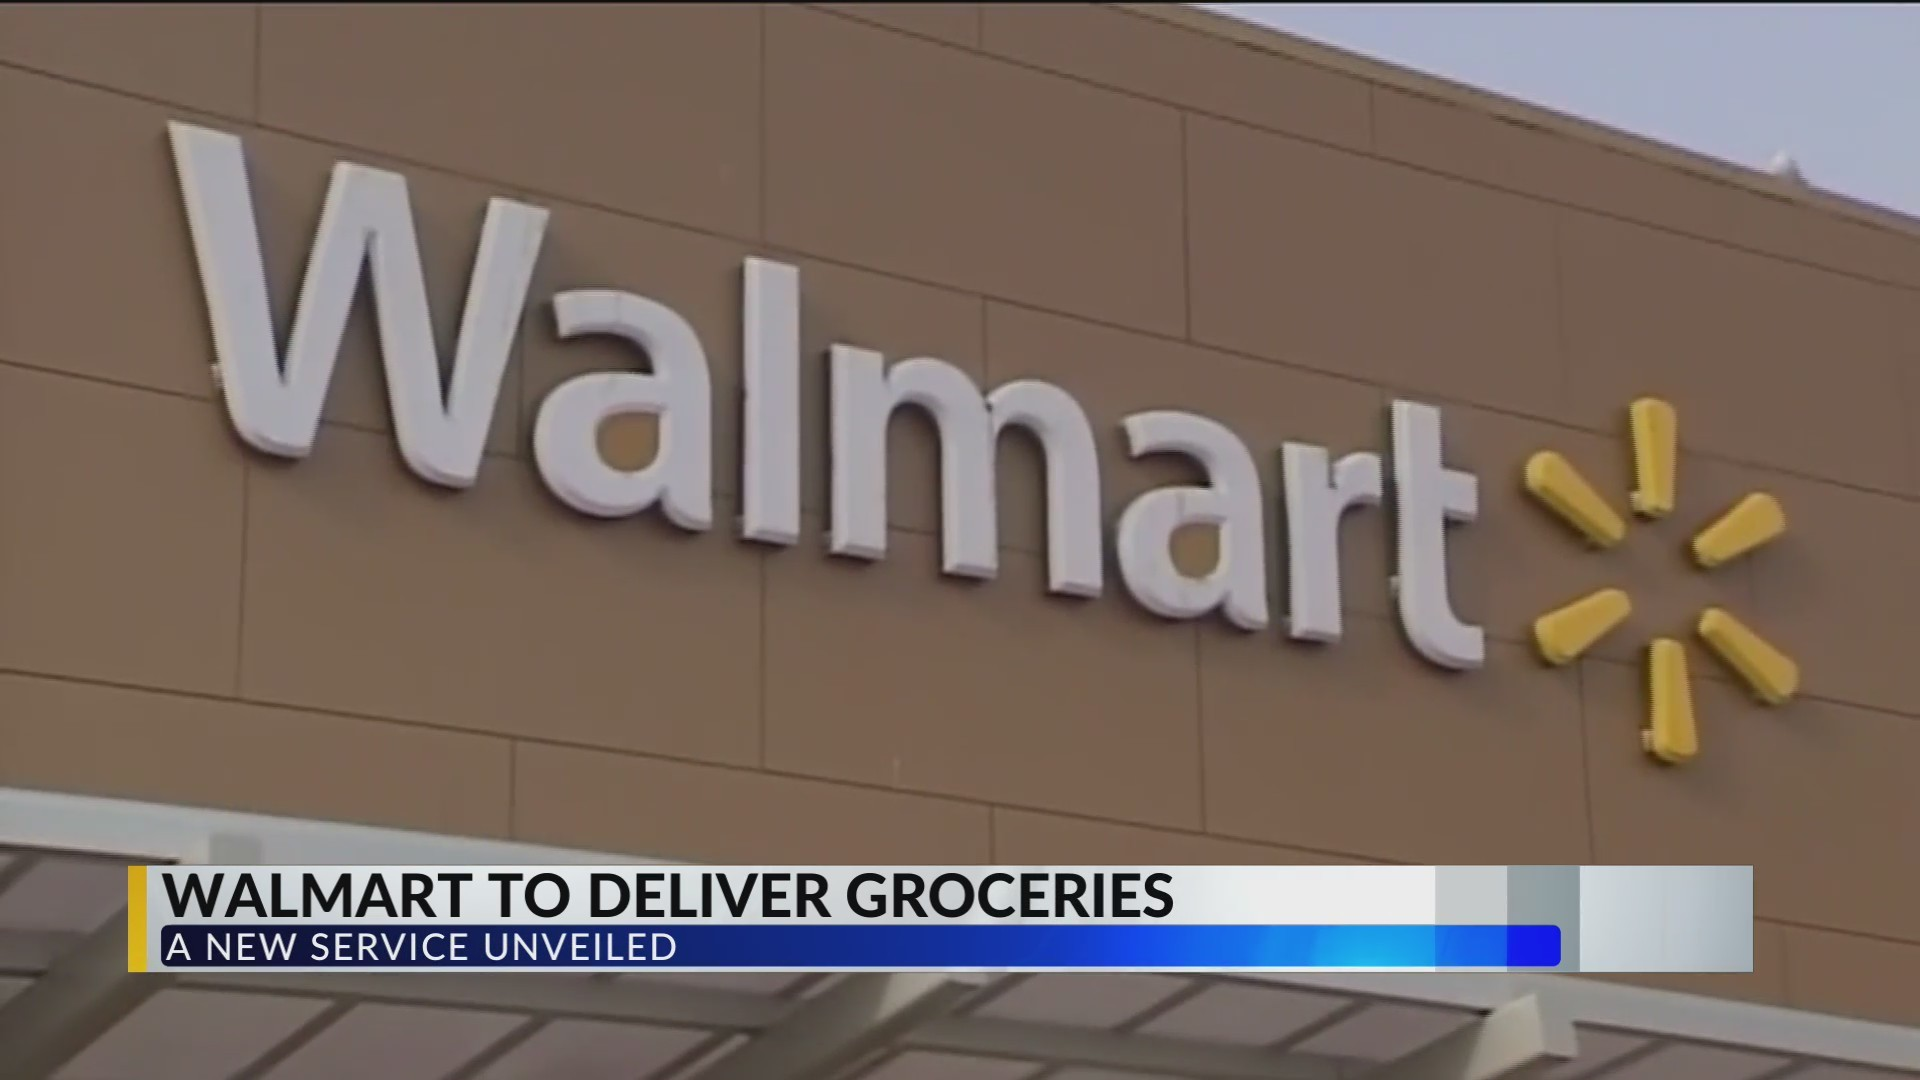 Walmart_s_new_service_that_brings_their__0_20190609022627